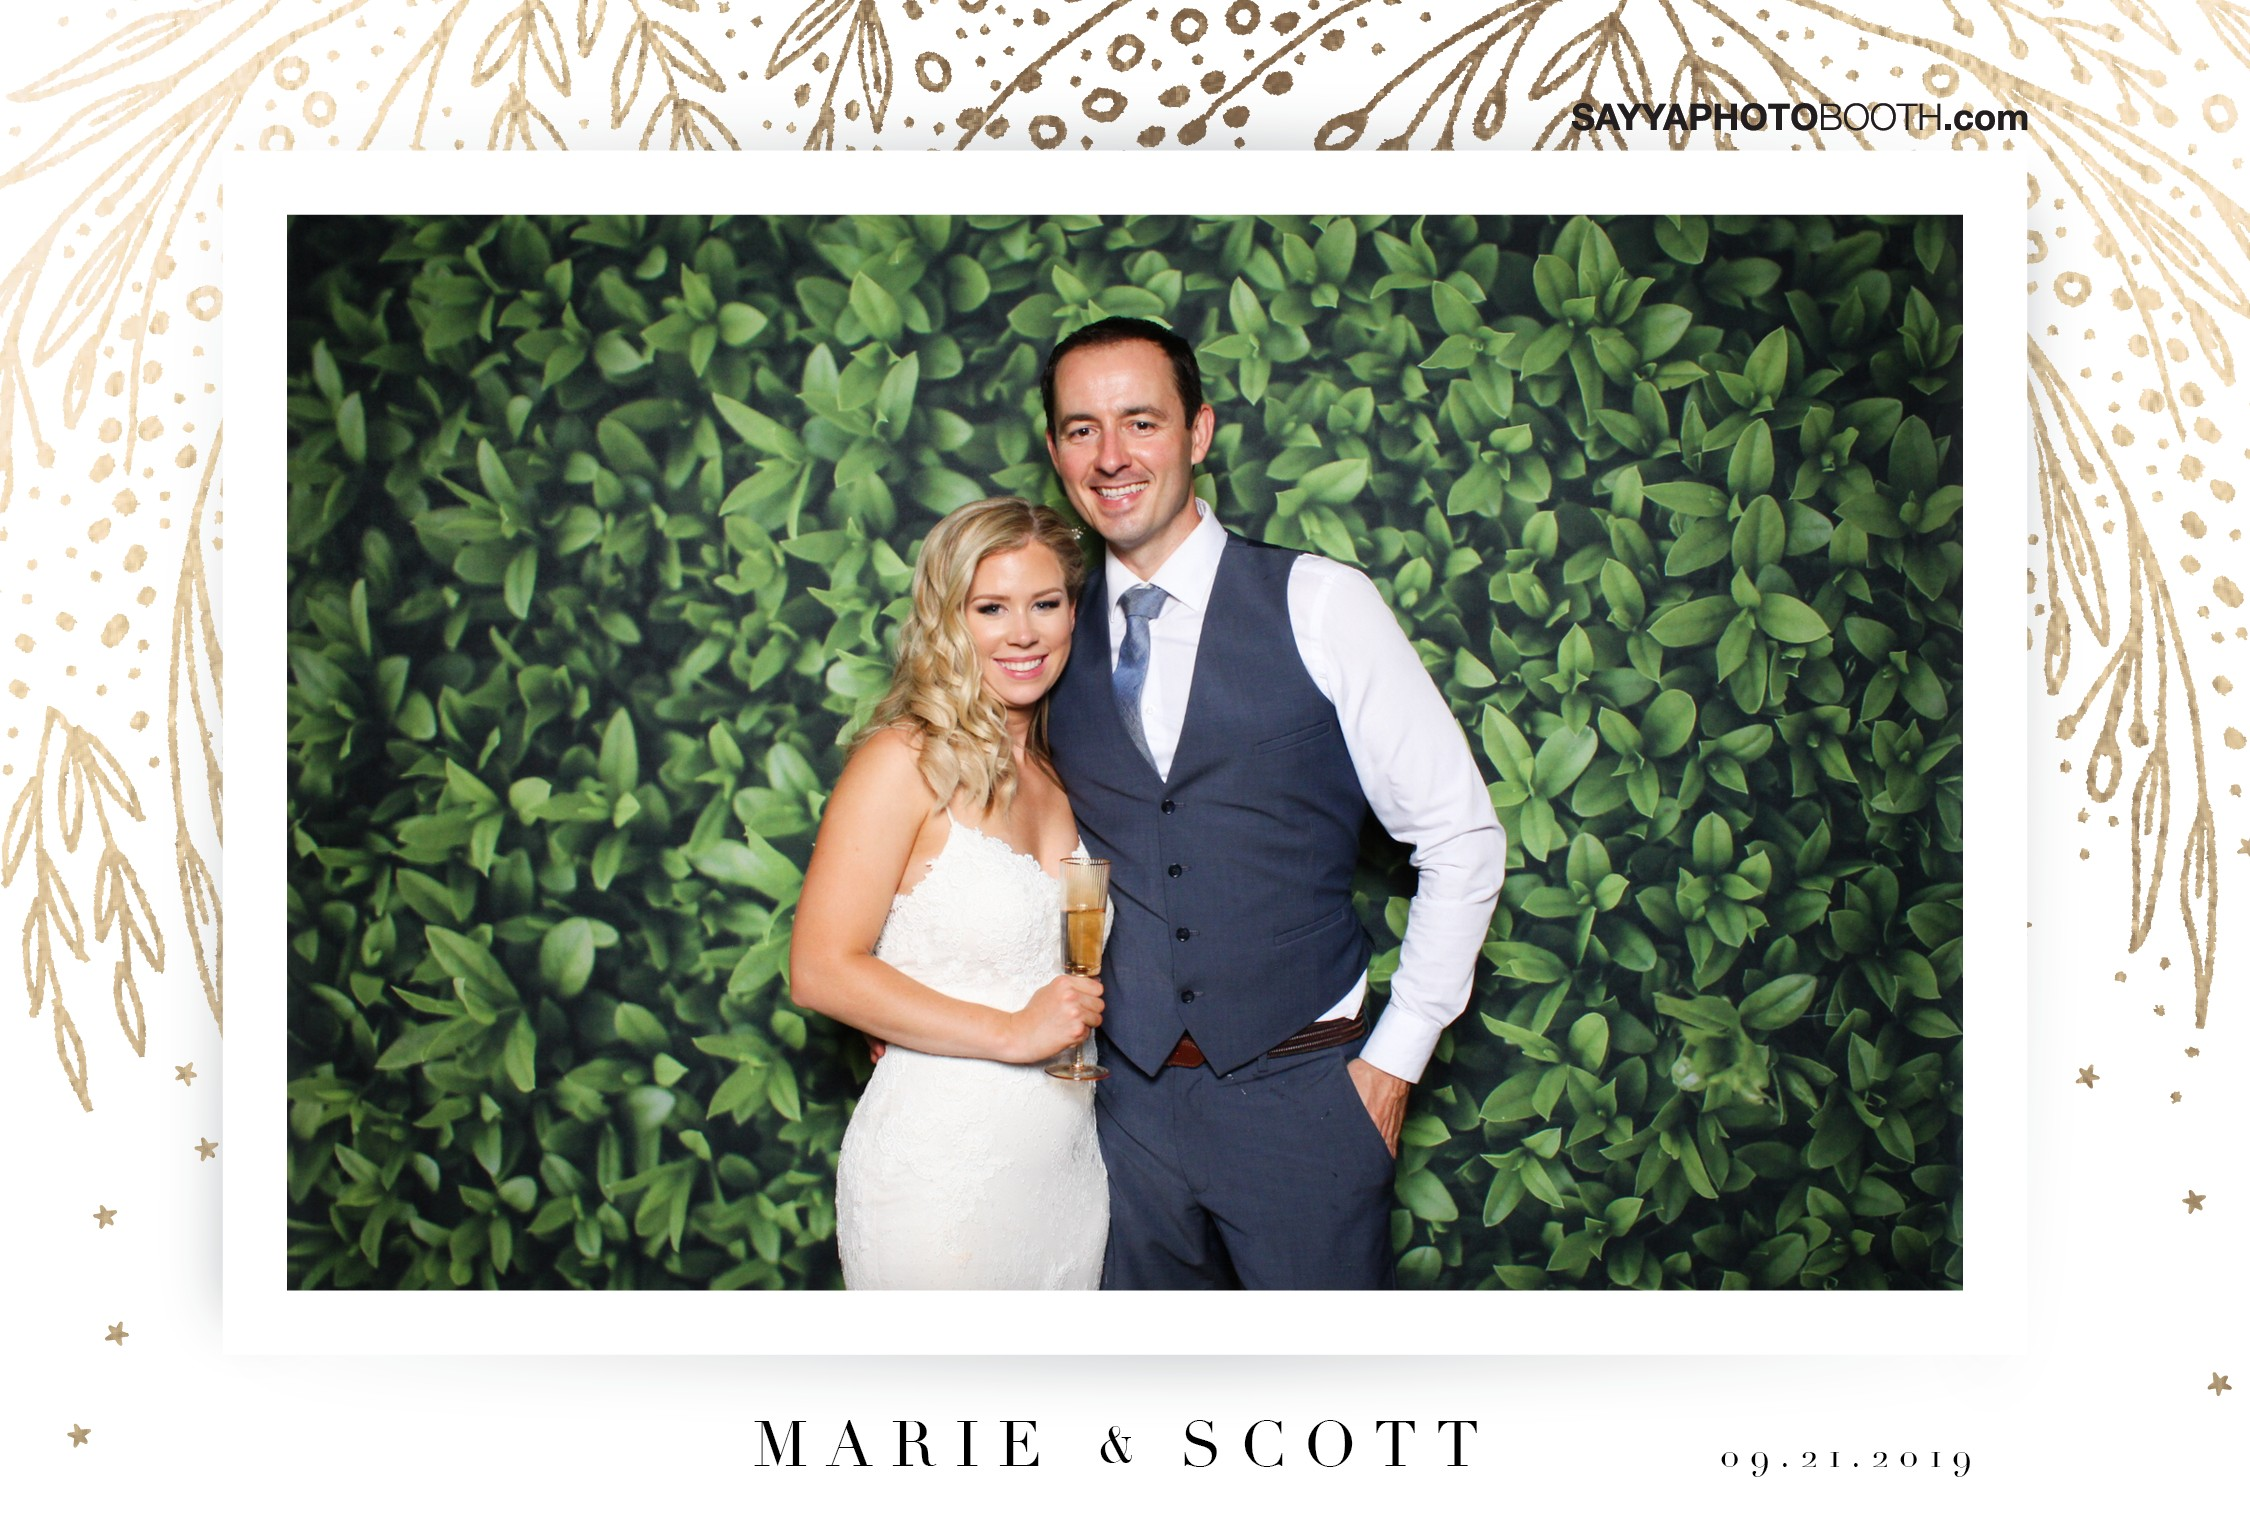 Marie & Scott's Wedding